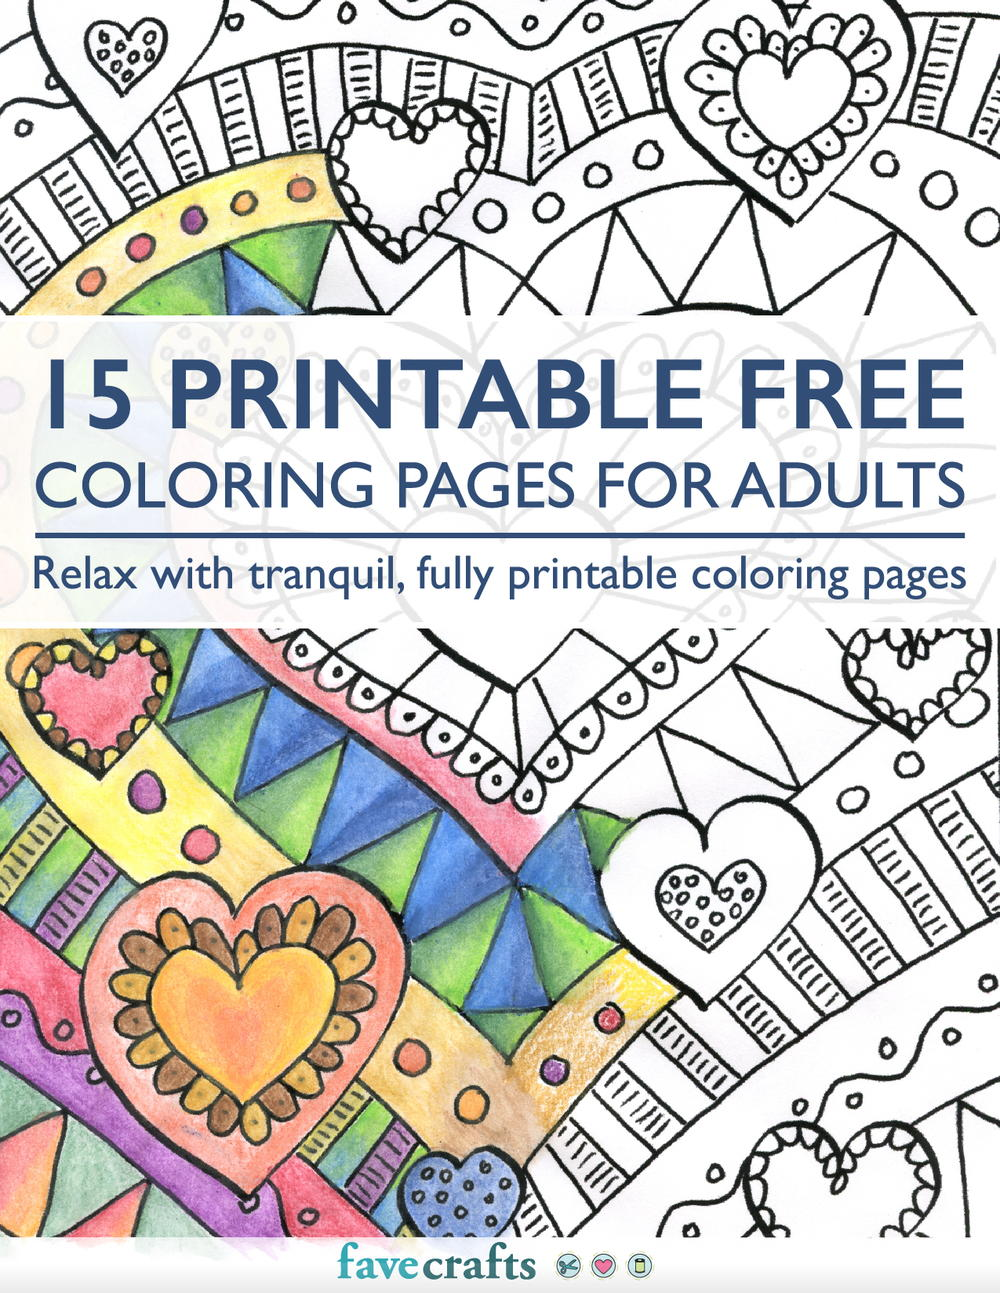 15 Printable Free Coloring Pages For Adults [PDF] FaveCrafts.com